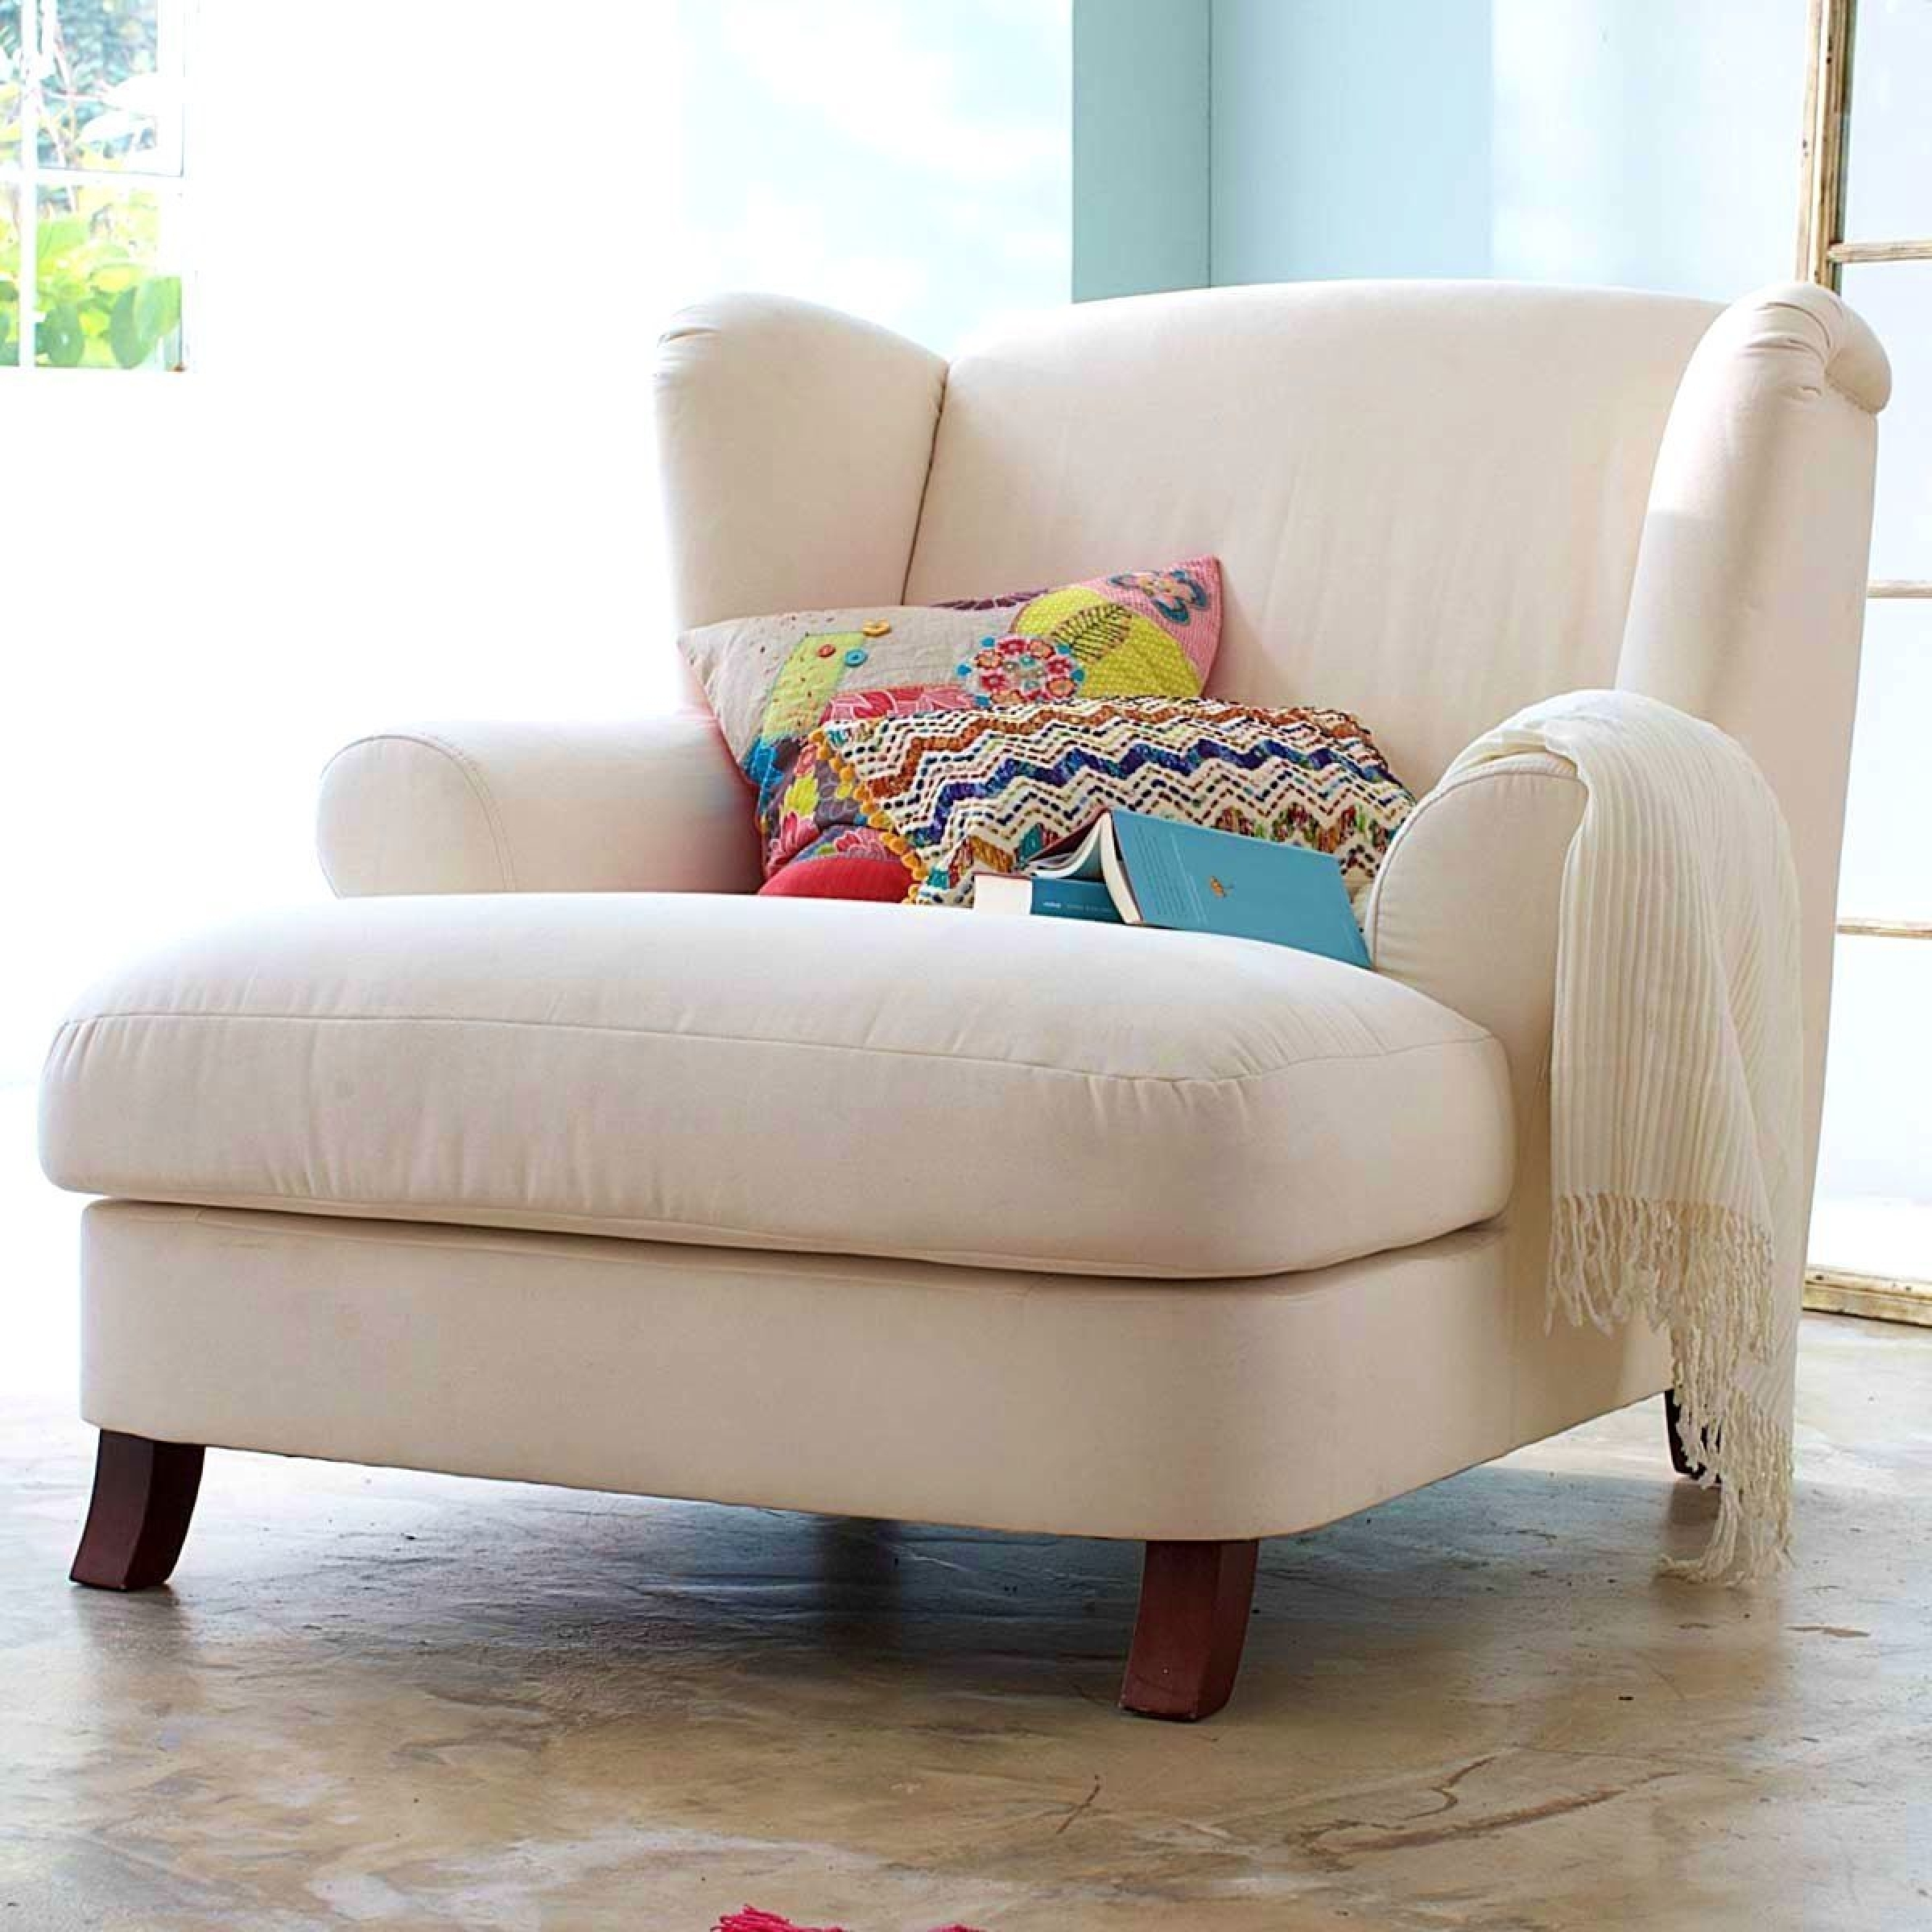 Best Picture Small Living Room Chairs With Arms